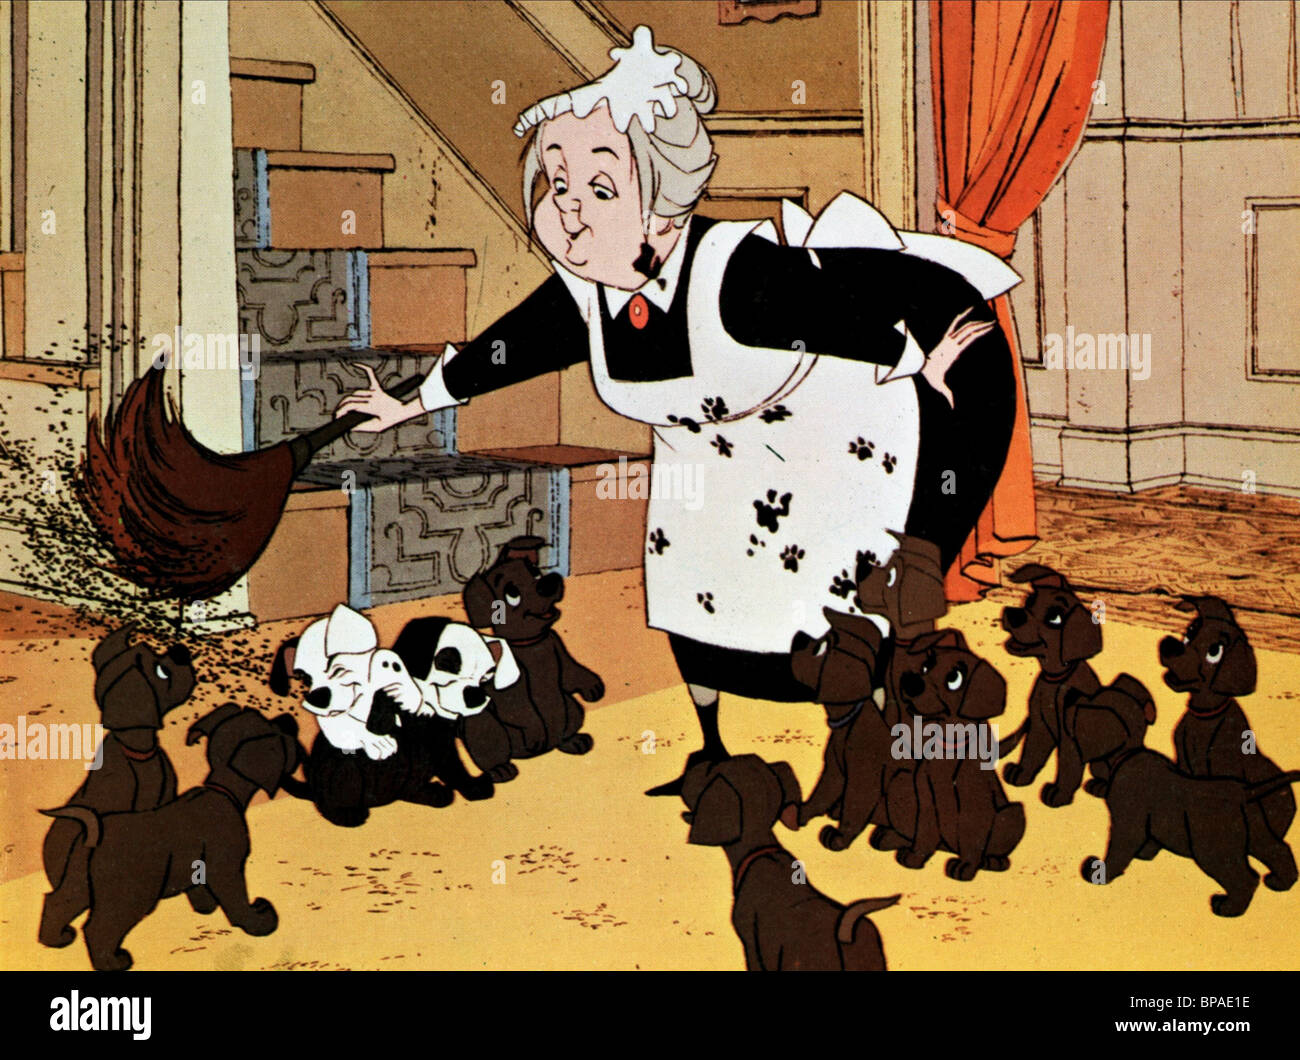 Dalmatians Movie Free